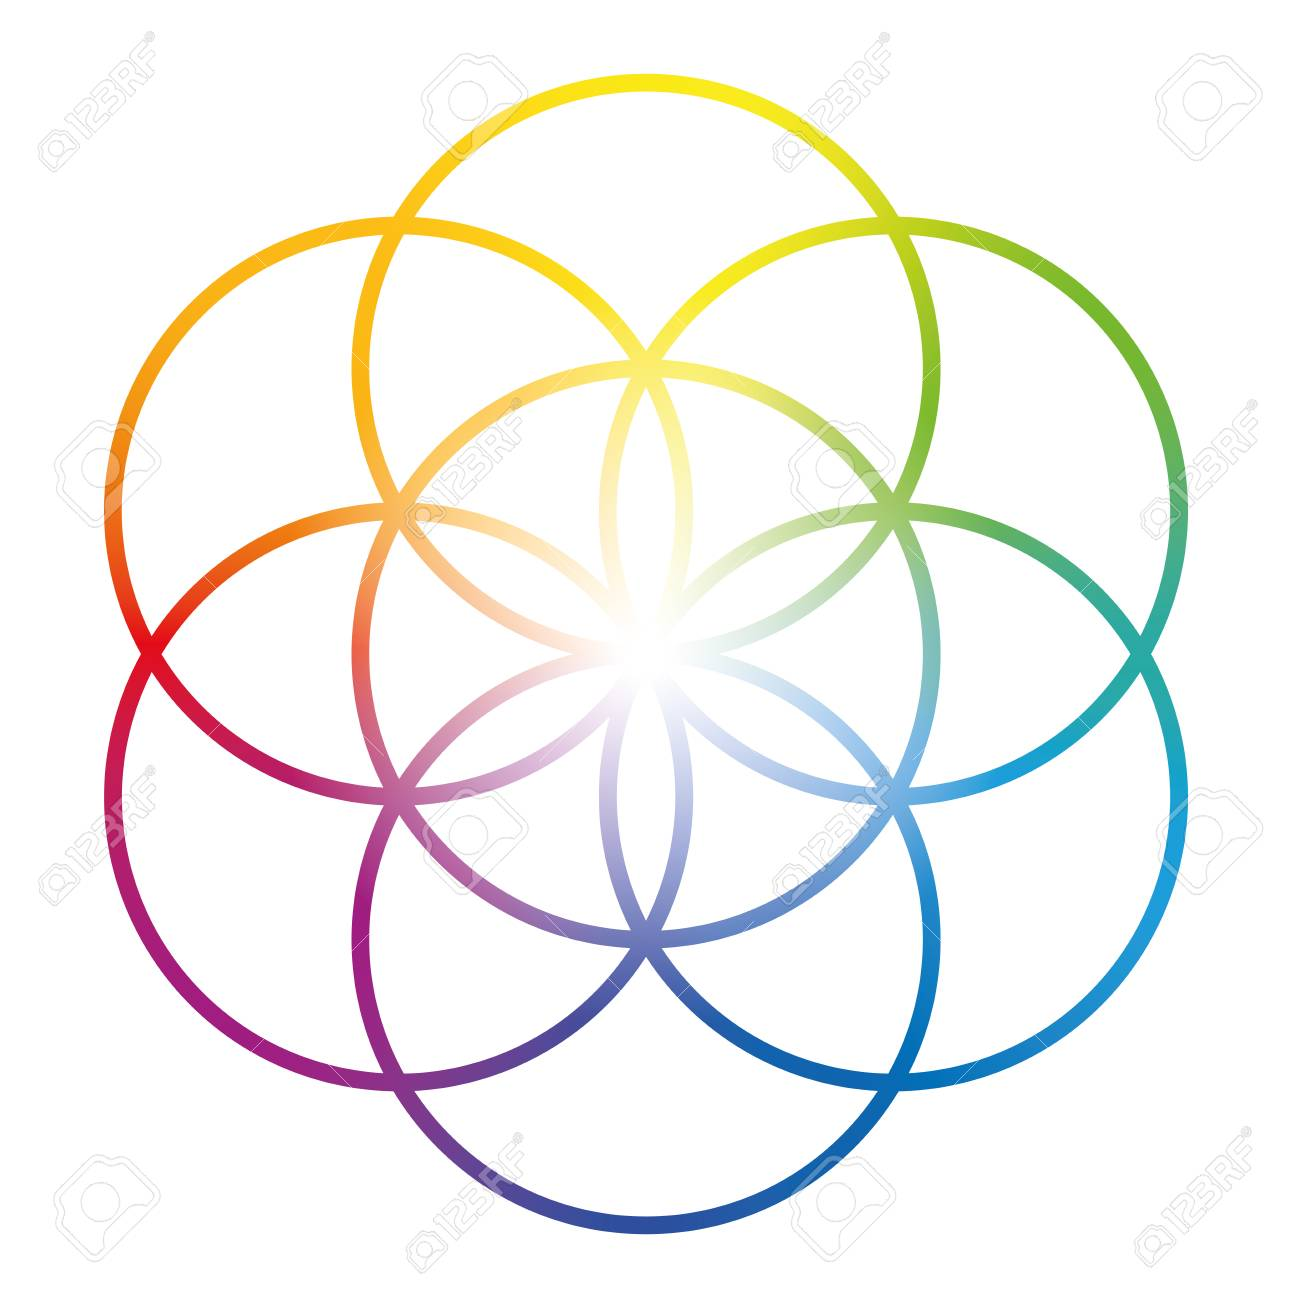 Rainbow colored Seed of Life  Precursor of Flower of Life symbol